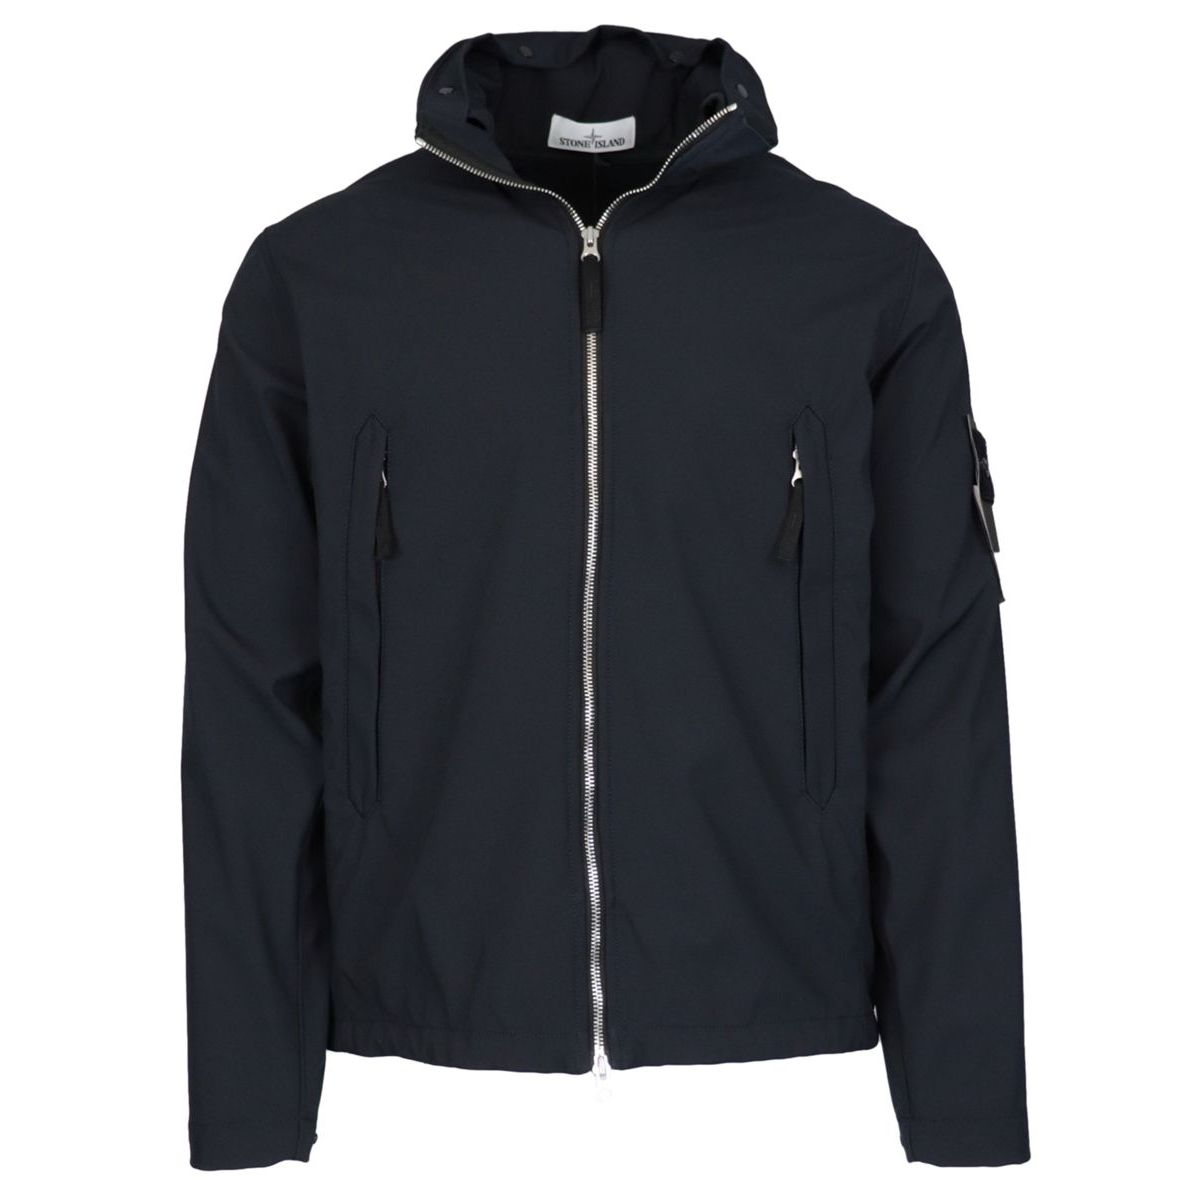 SOFT SHELL jacket with contrasting zip and removable hood Blue Stone Island